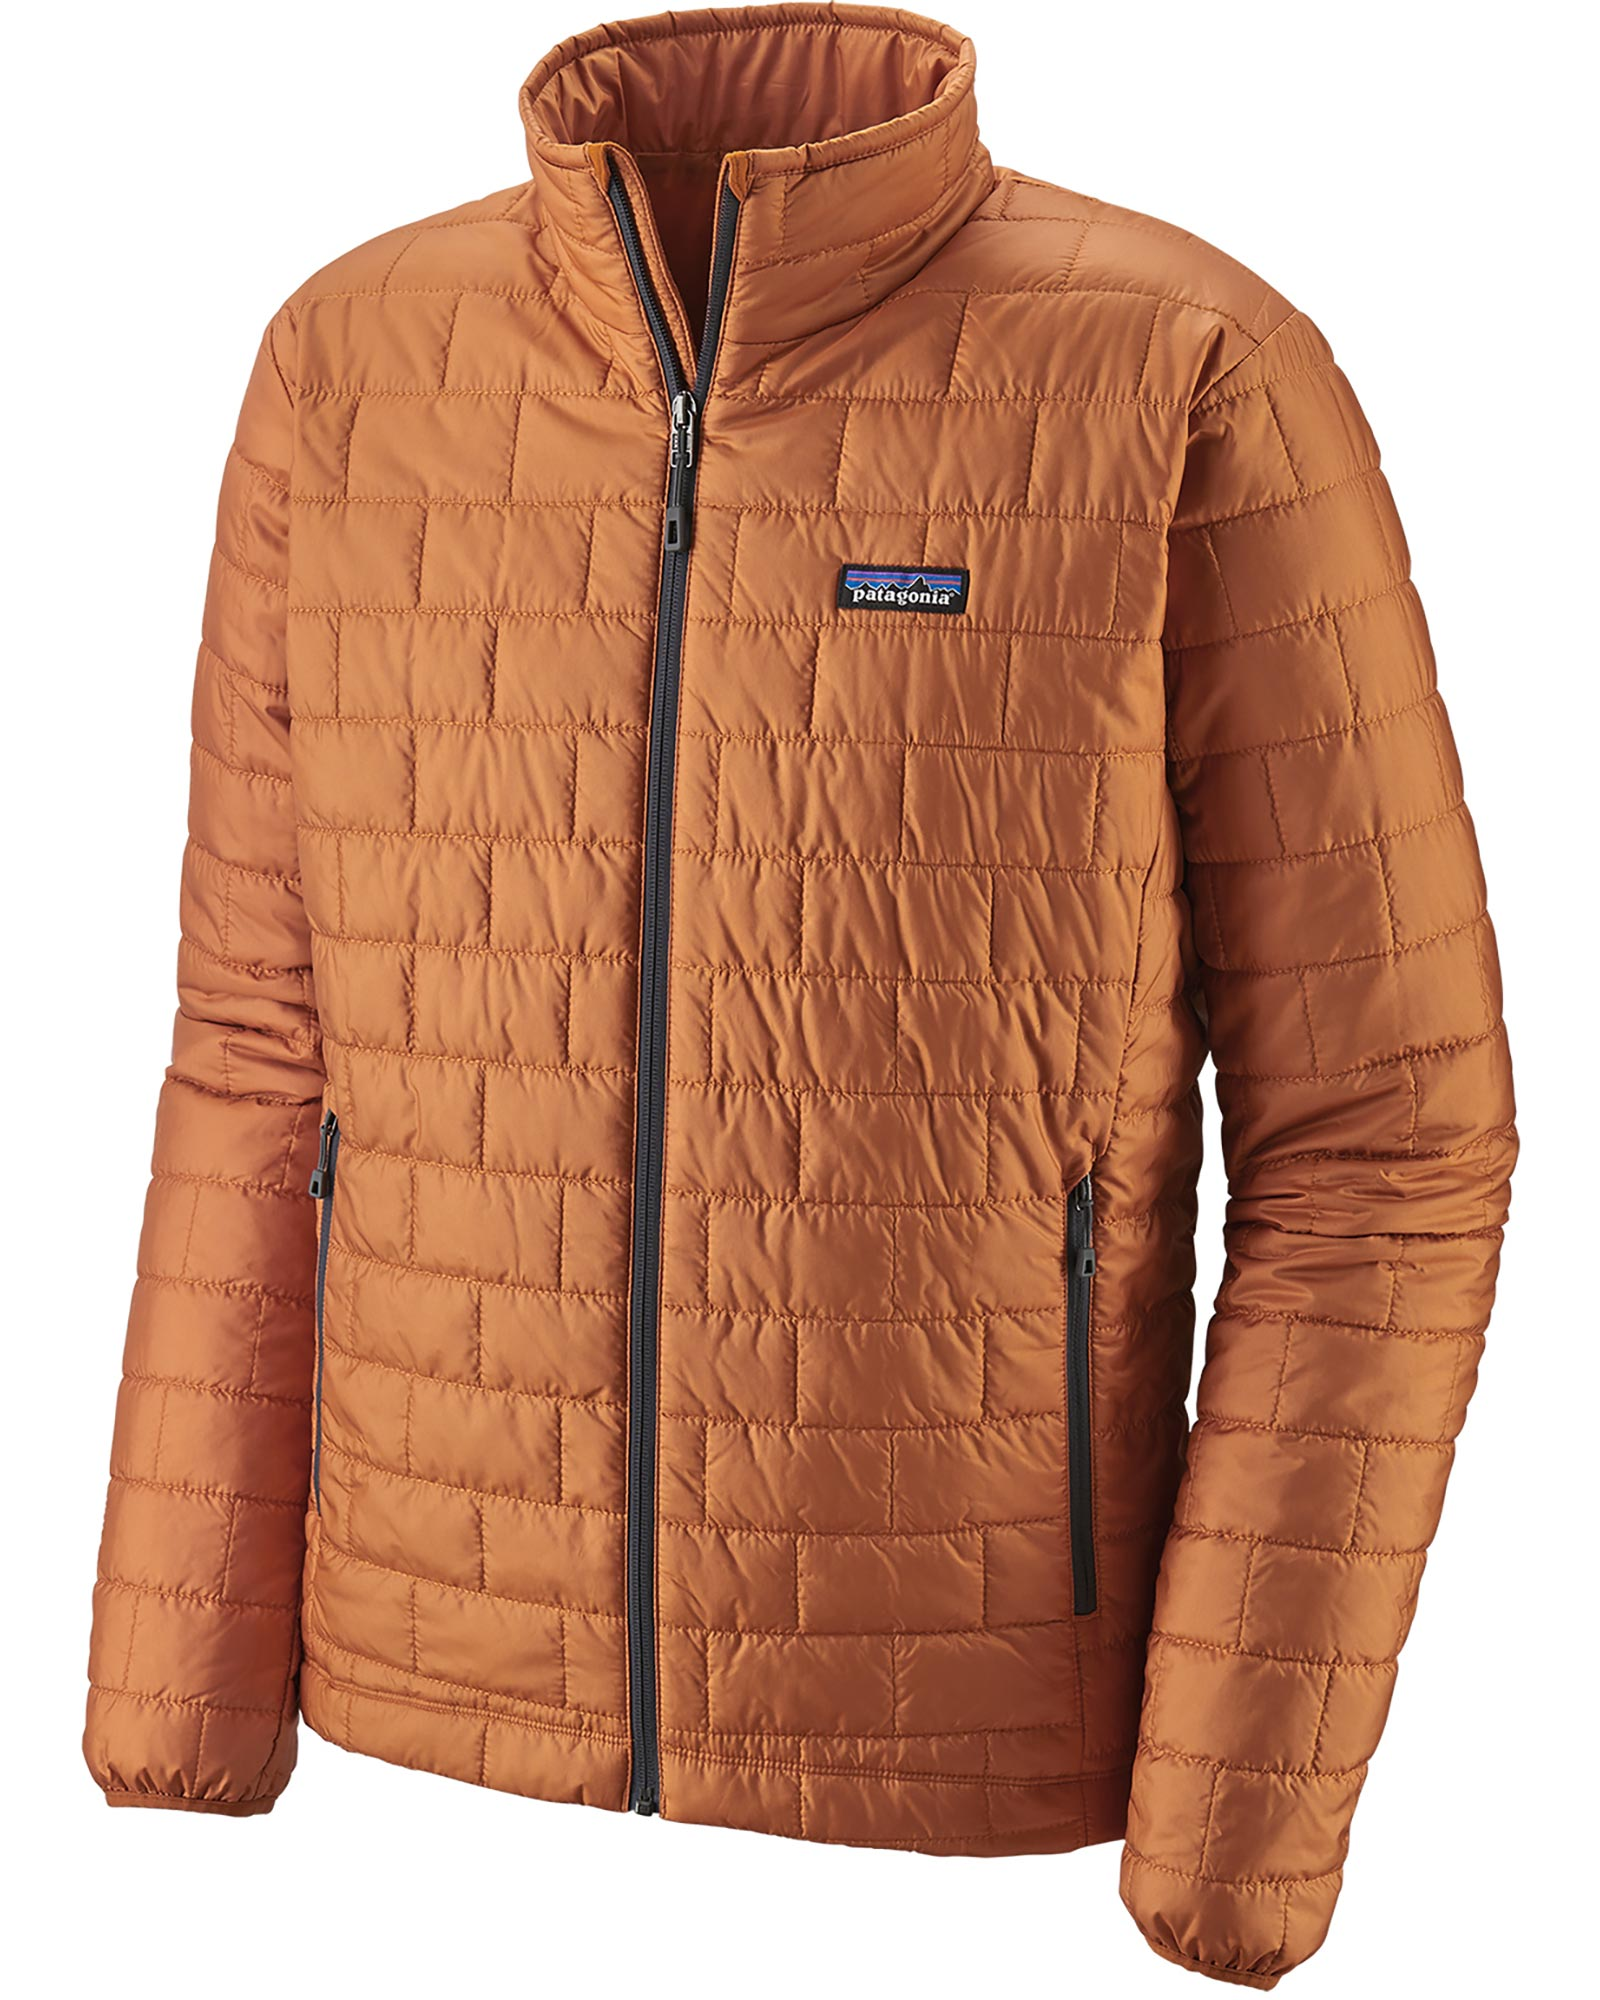 Patagonia Men's Nano Puff Jacket 0